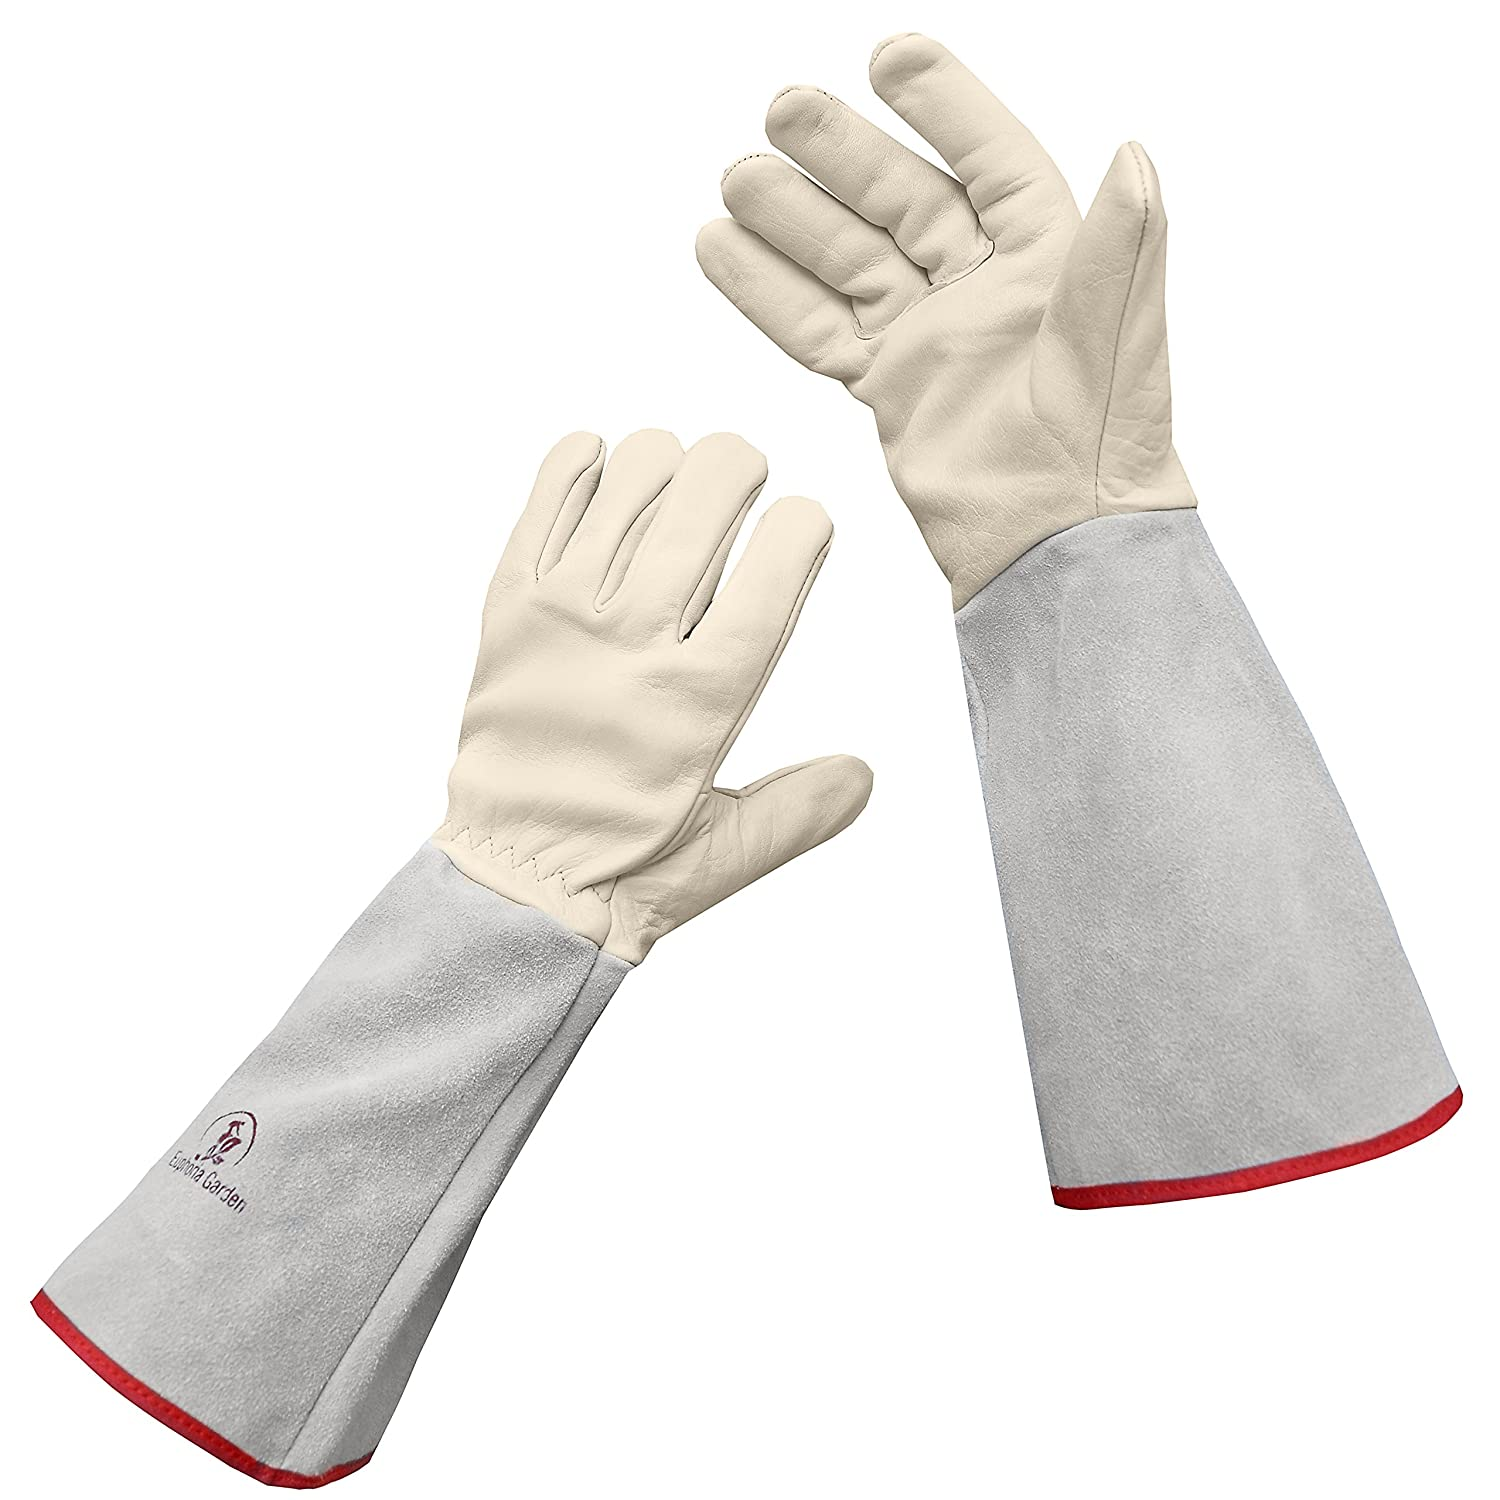 Euphoria Garden Thornproof Leather ROSE GARDENING Gauntlet Gloves – Small